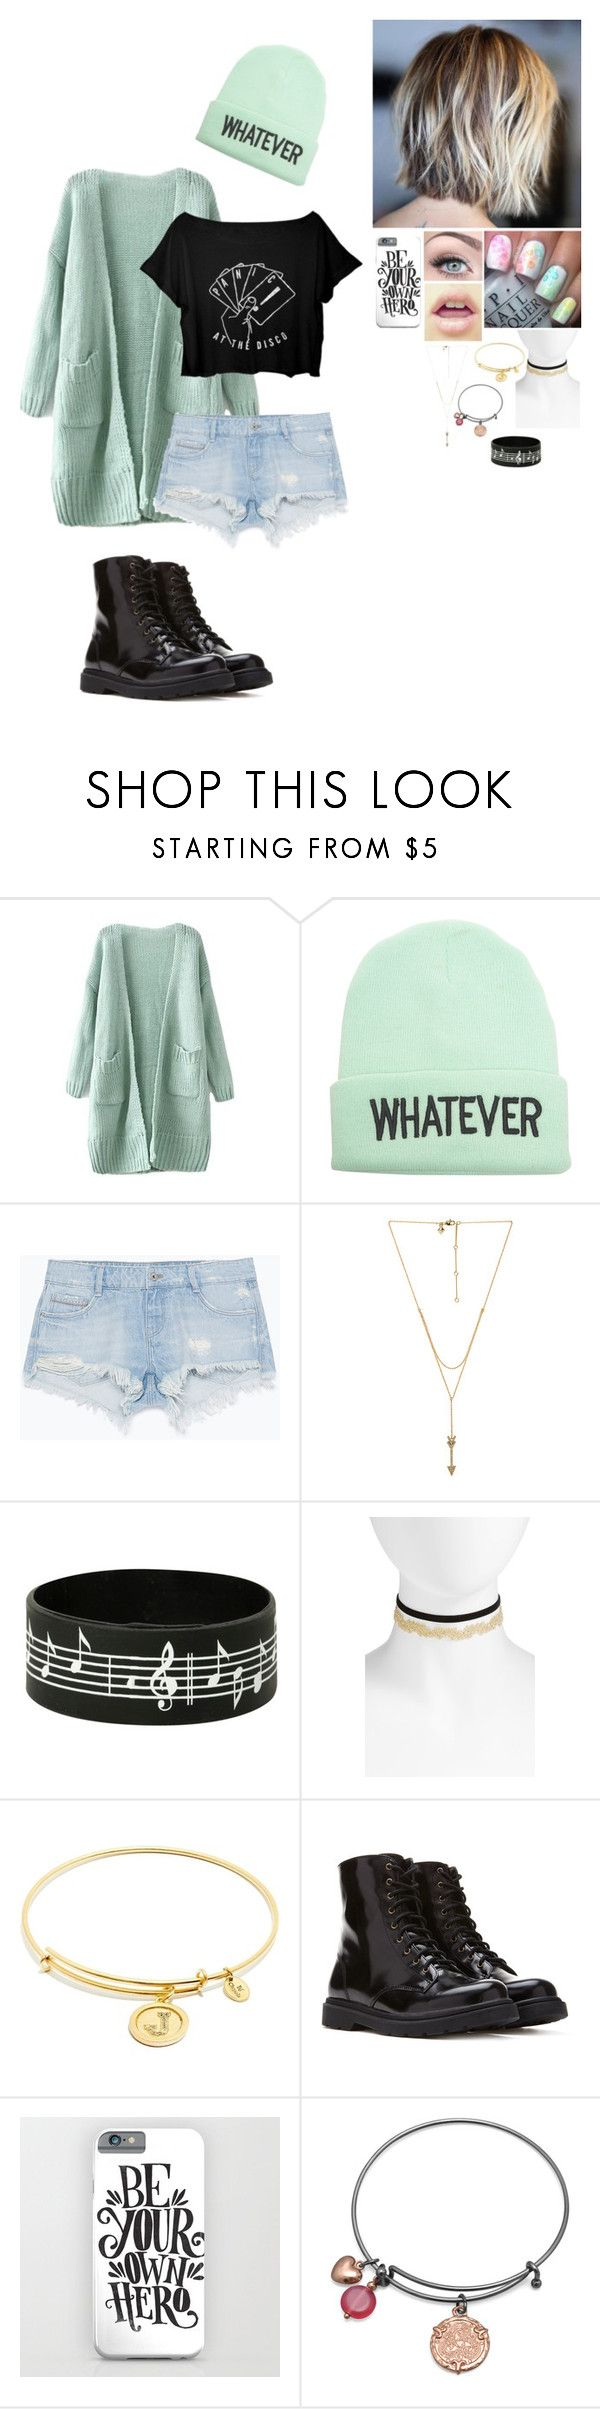 """Jamie #7"" by alexishambleton on Polyvore featuring mode, Wet Seal, Zara, Rebecca Minkoff, BP., Chrysalis, Forever 21 et BillyTheTree"